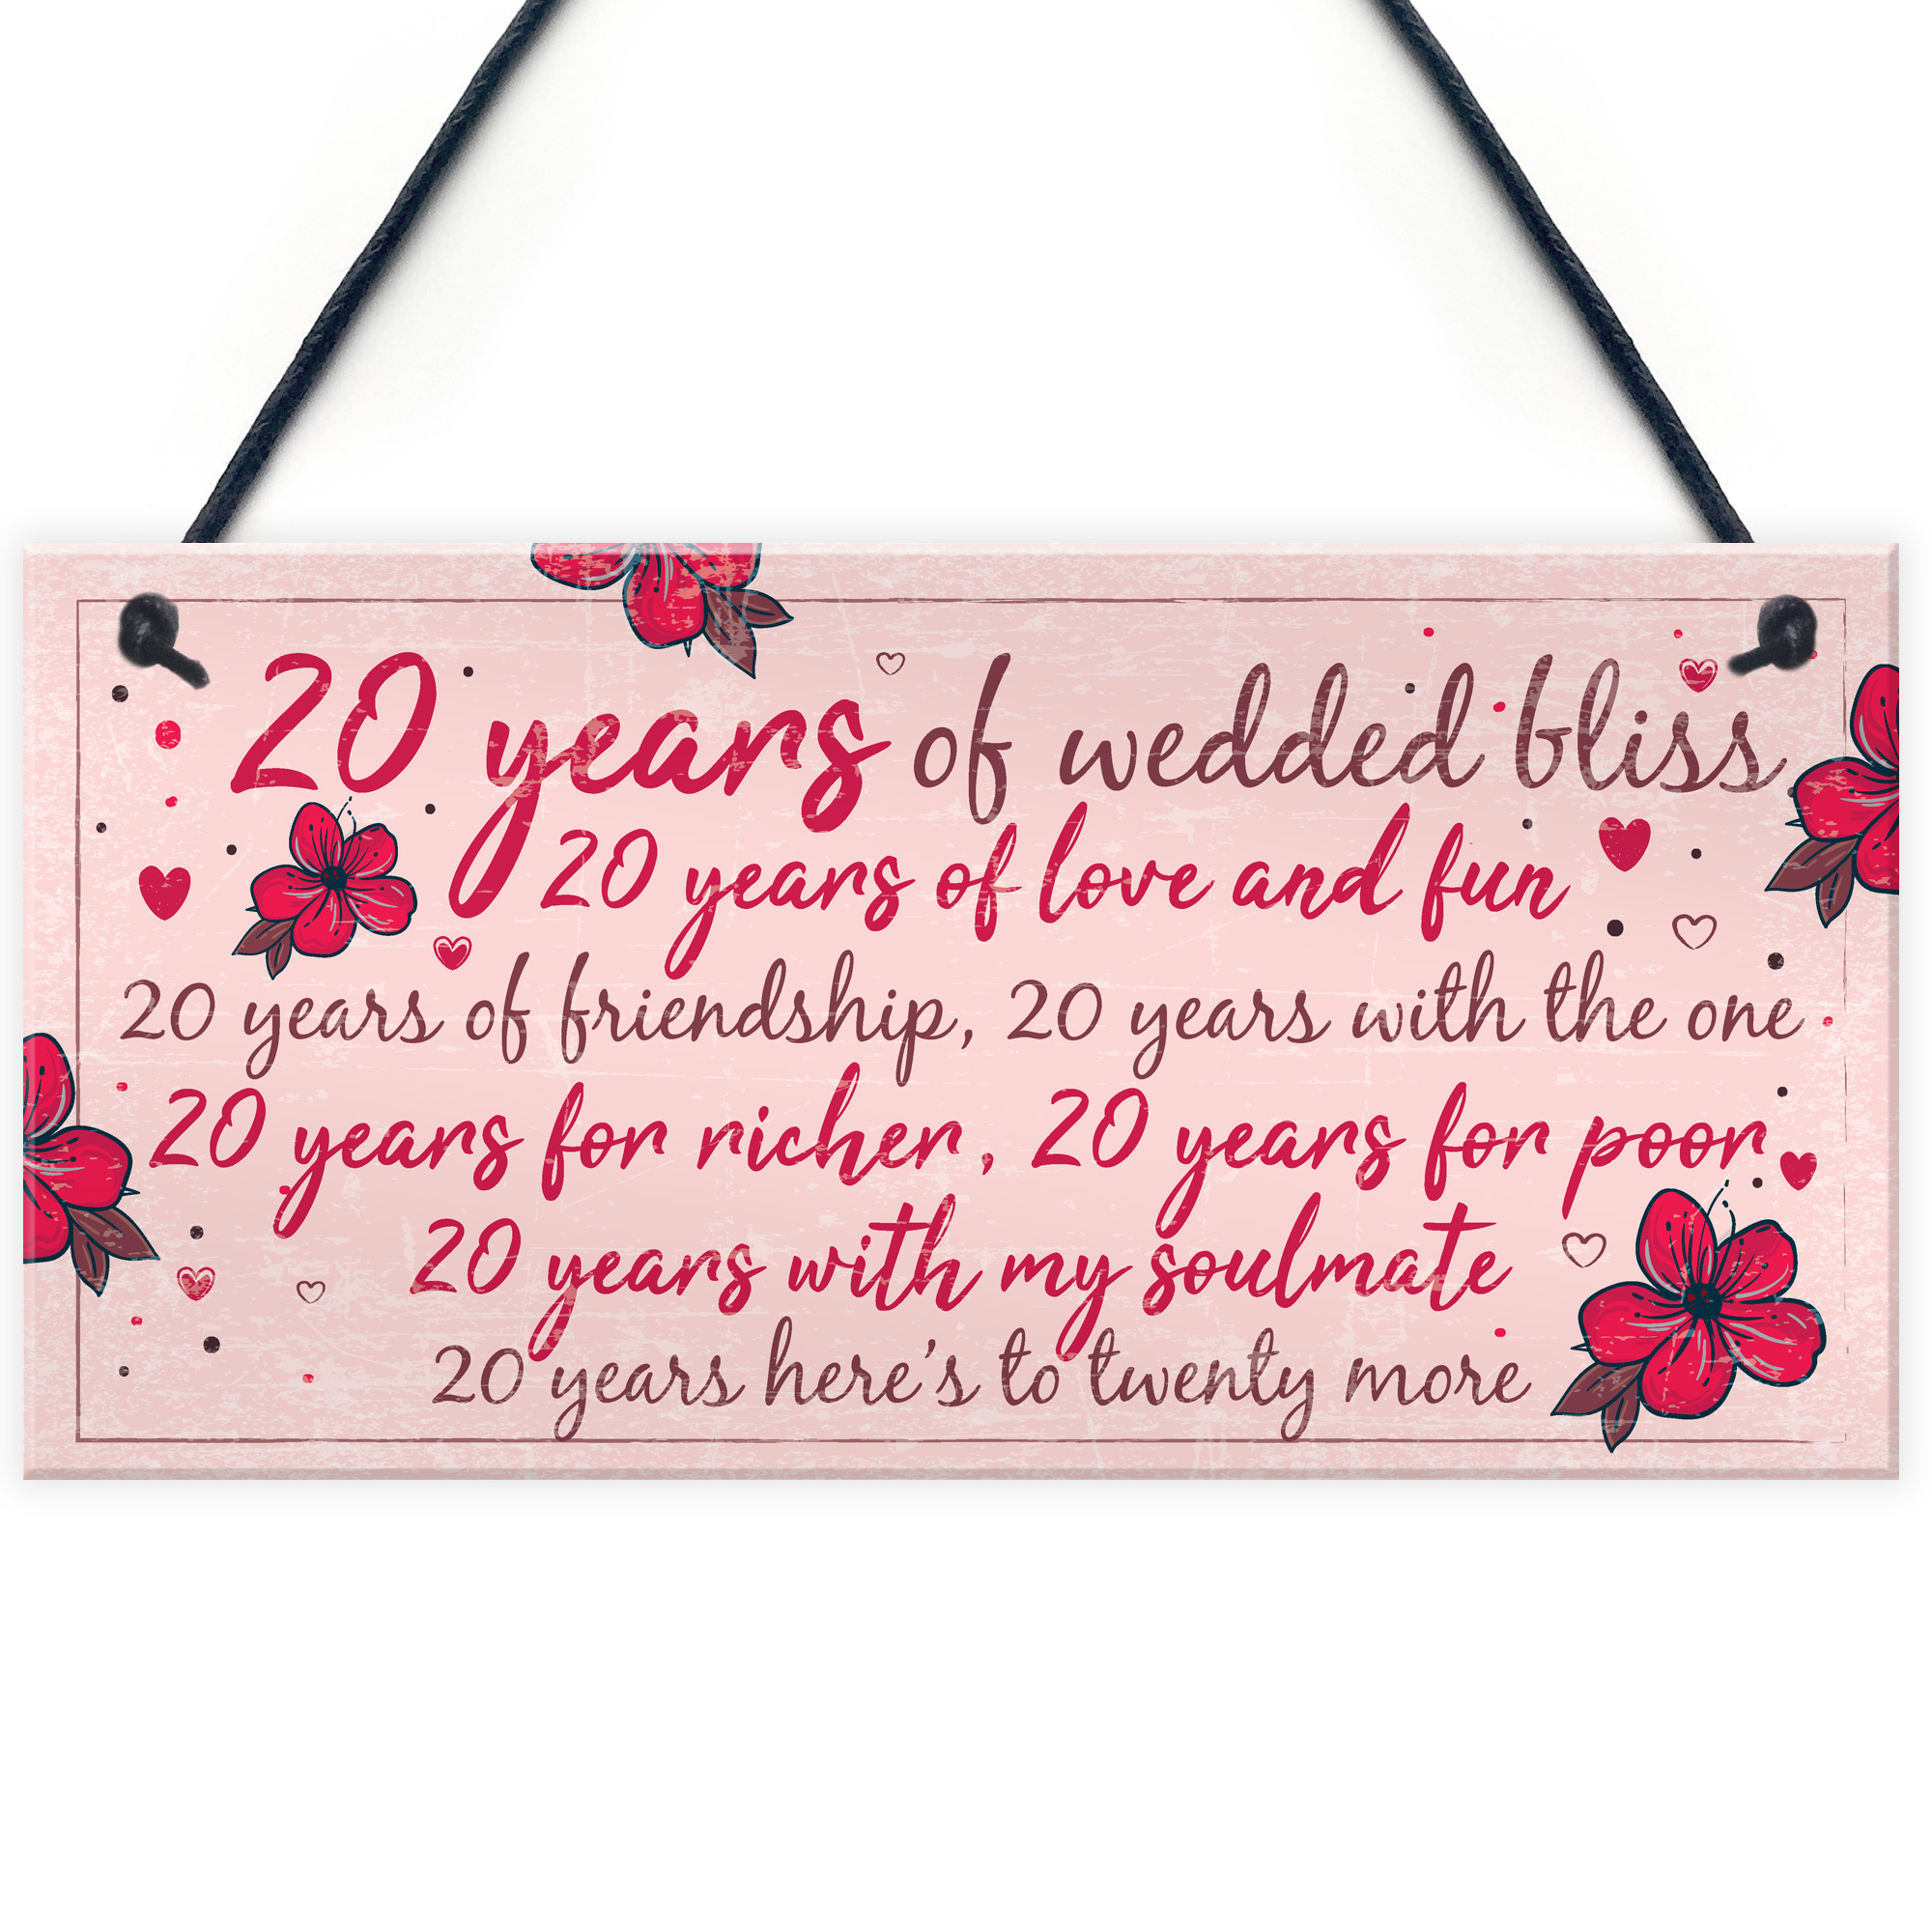 Gift For Wife On Wedding Anniversary: 20th Wedding Anniversary Card Gift For Husband Wife Twenty